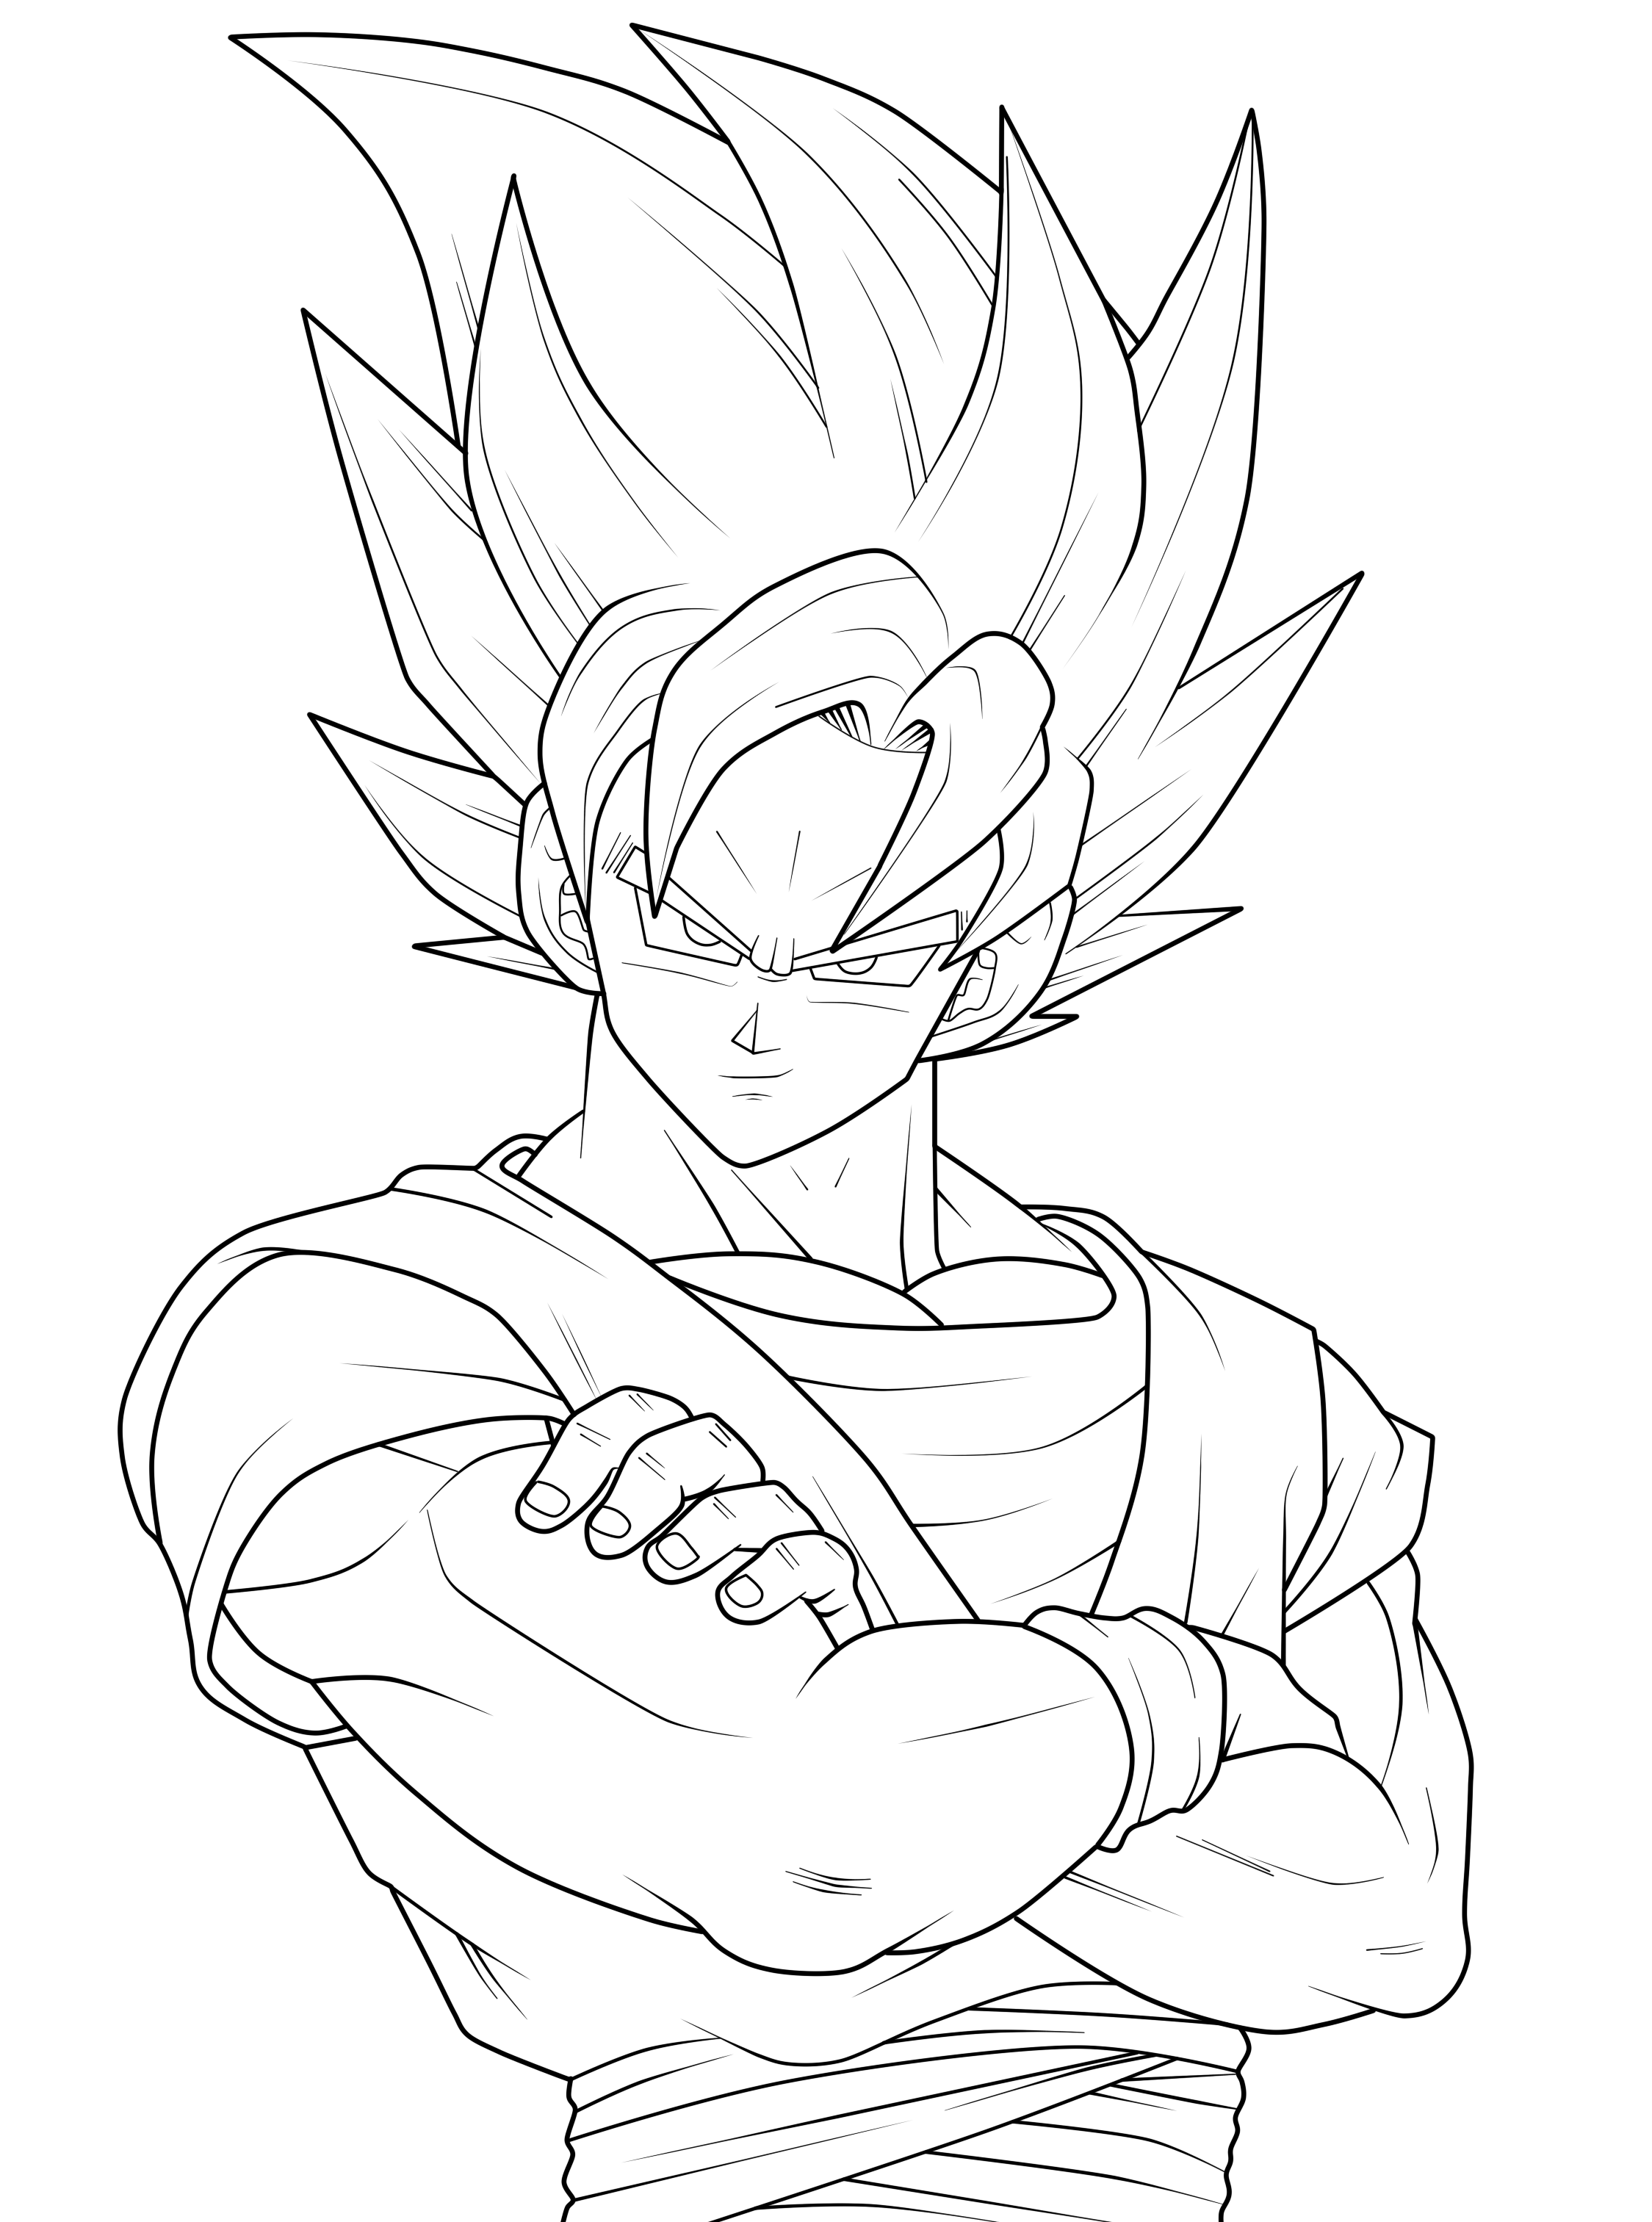 BEST DRAGON BALL Z COLORING PAGES IMAGES ON PINTEREST - | 3025x2249